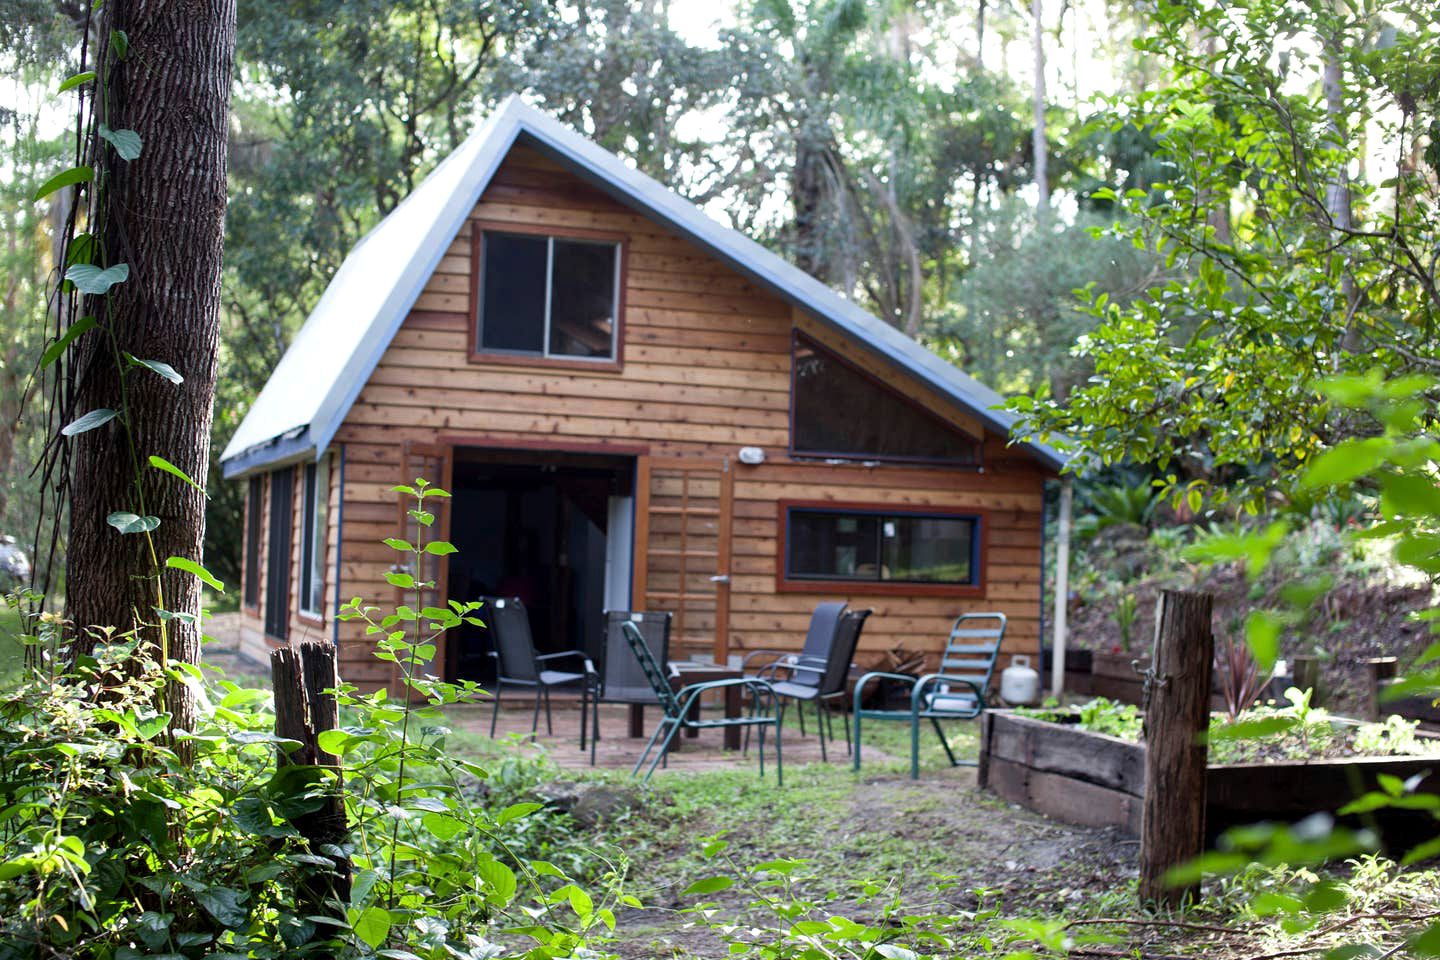 Barn accommodation ideal for NSW holidays and family getaways